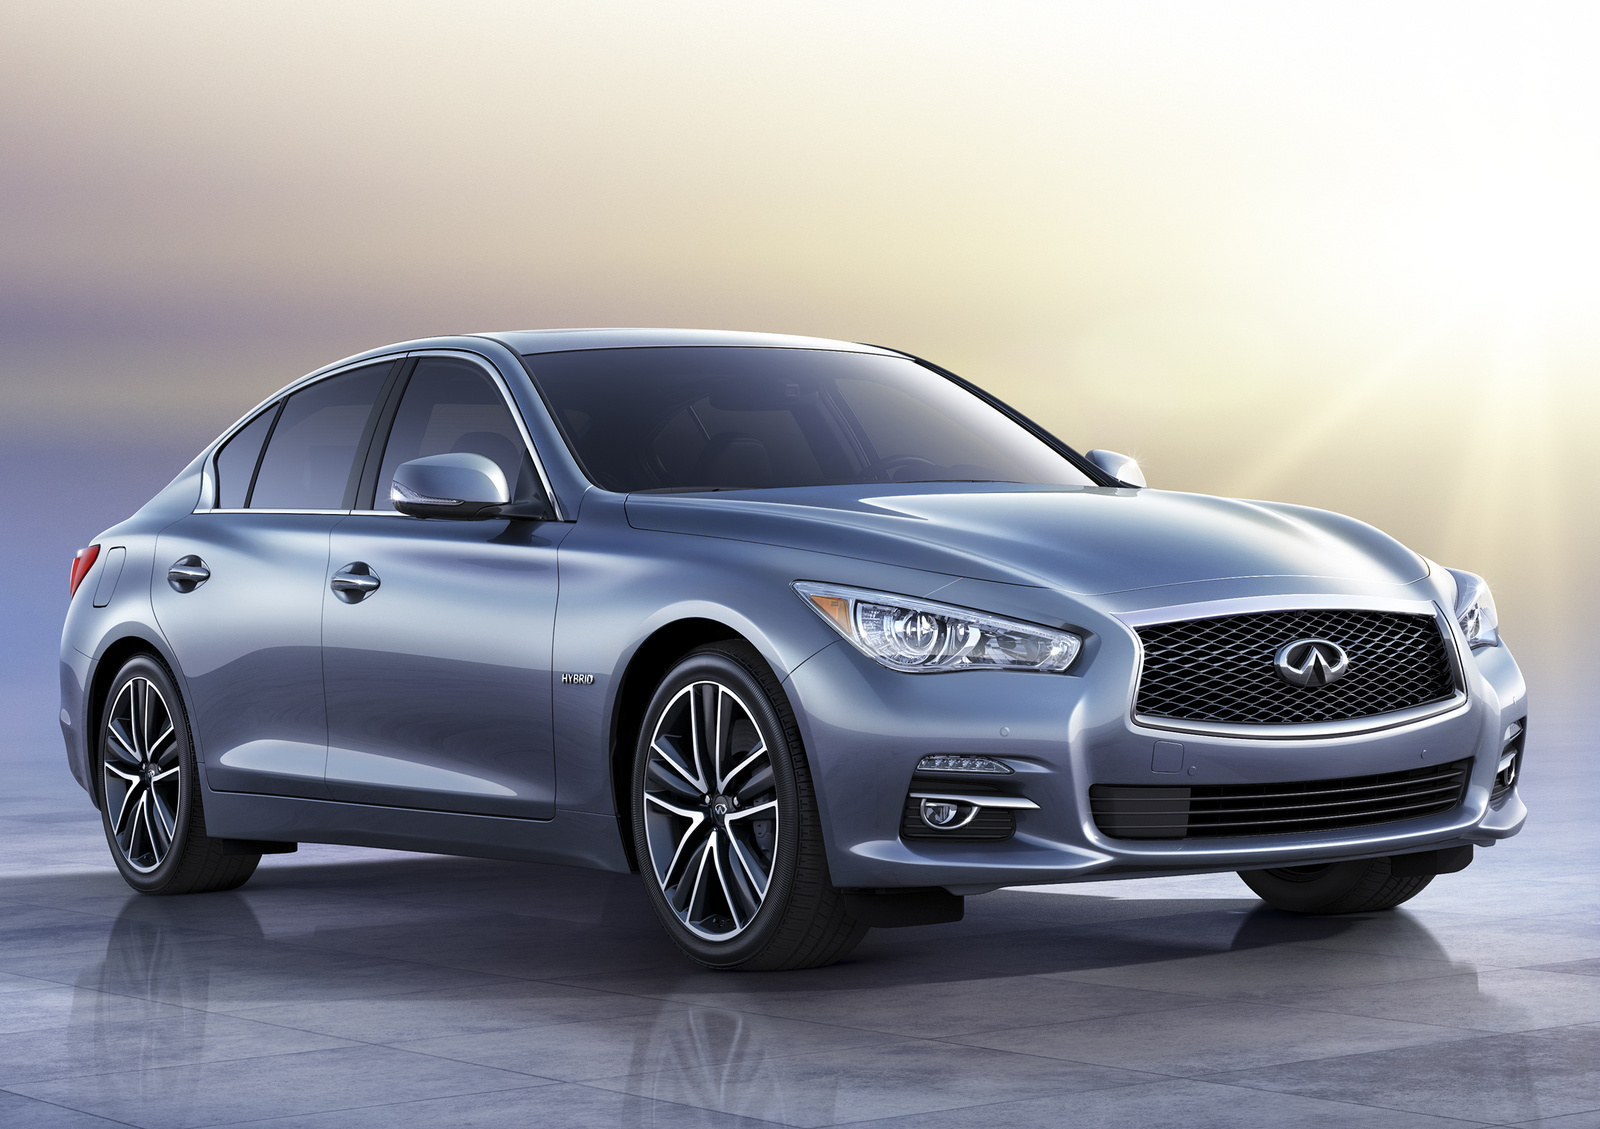 2014 Infiniti Q50, Front-quarter view, exterior, manufacturer, lead_in